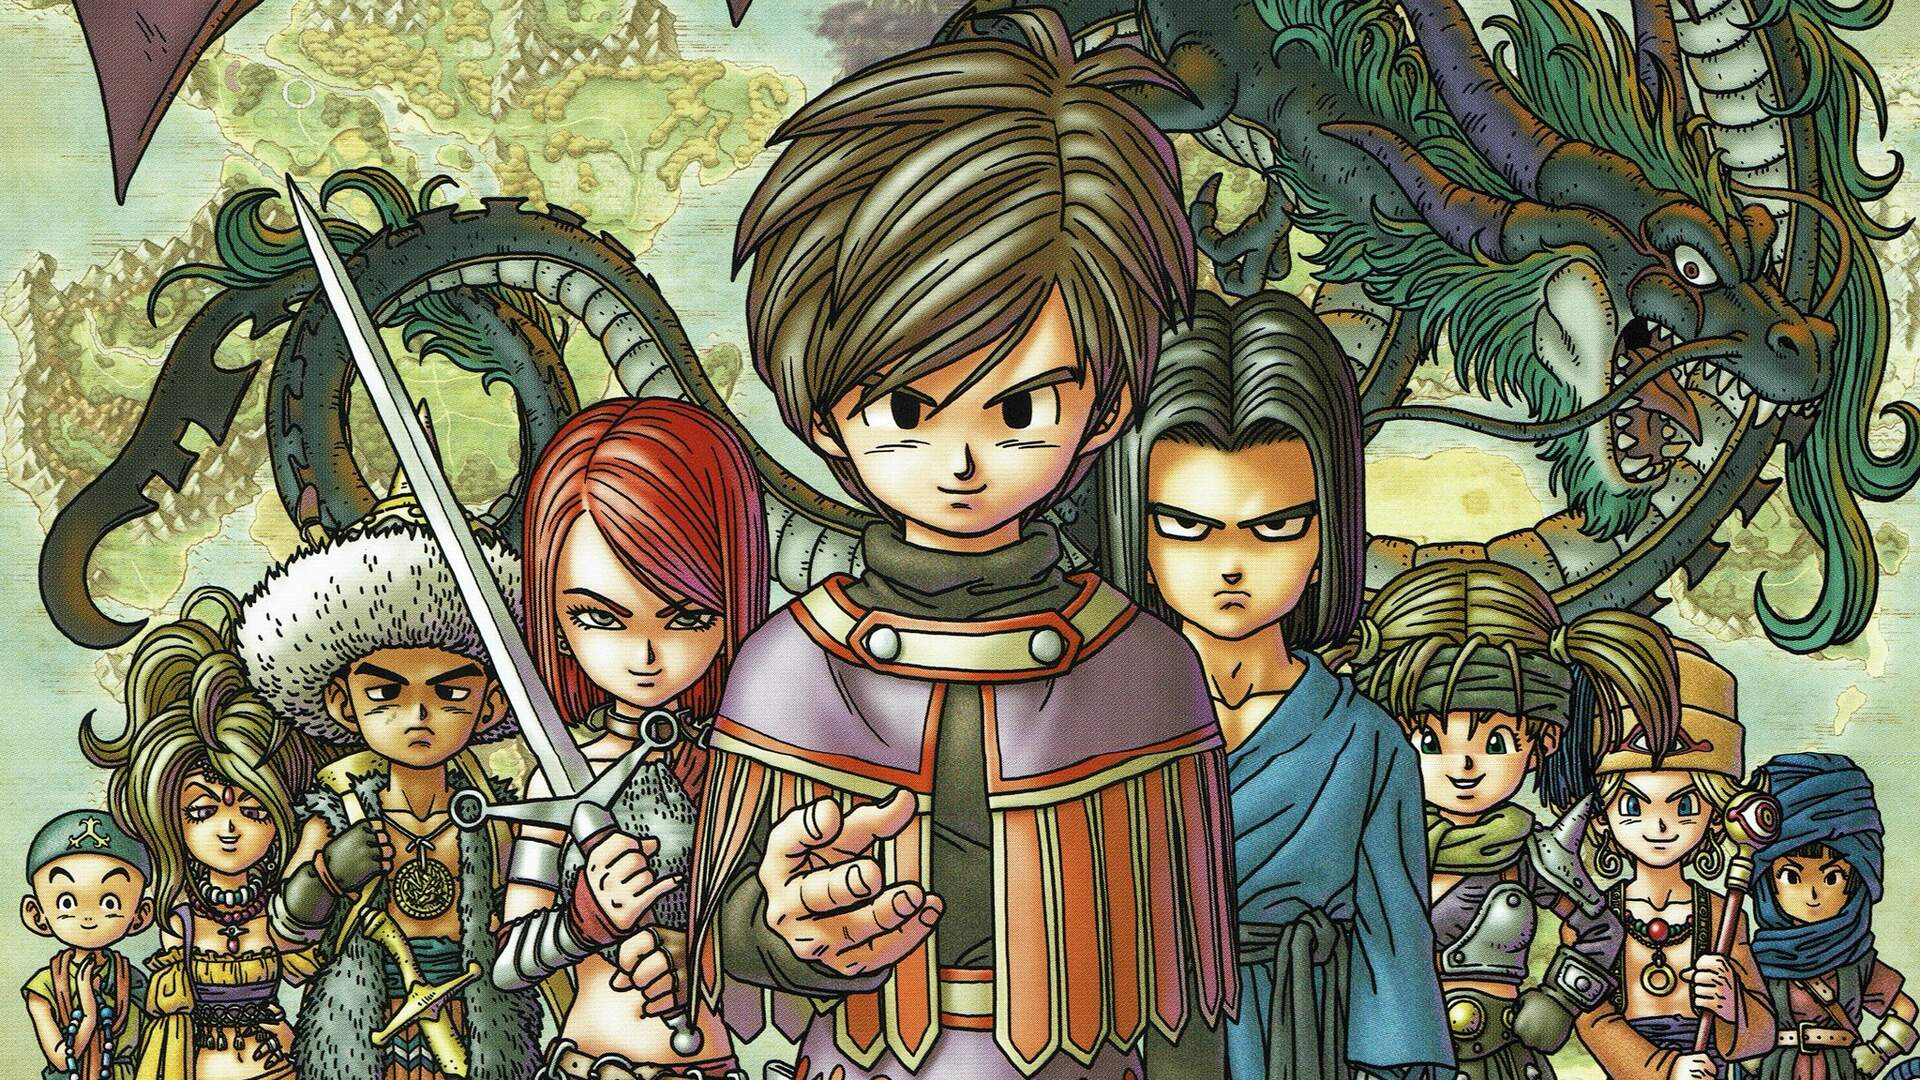 Remember When... Dragon Quest 9 Shocked the World?